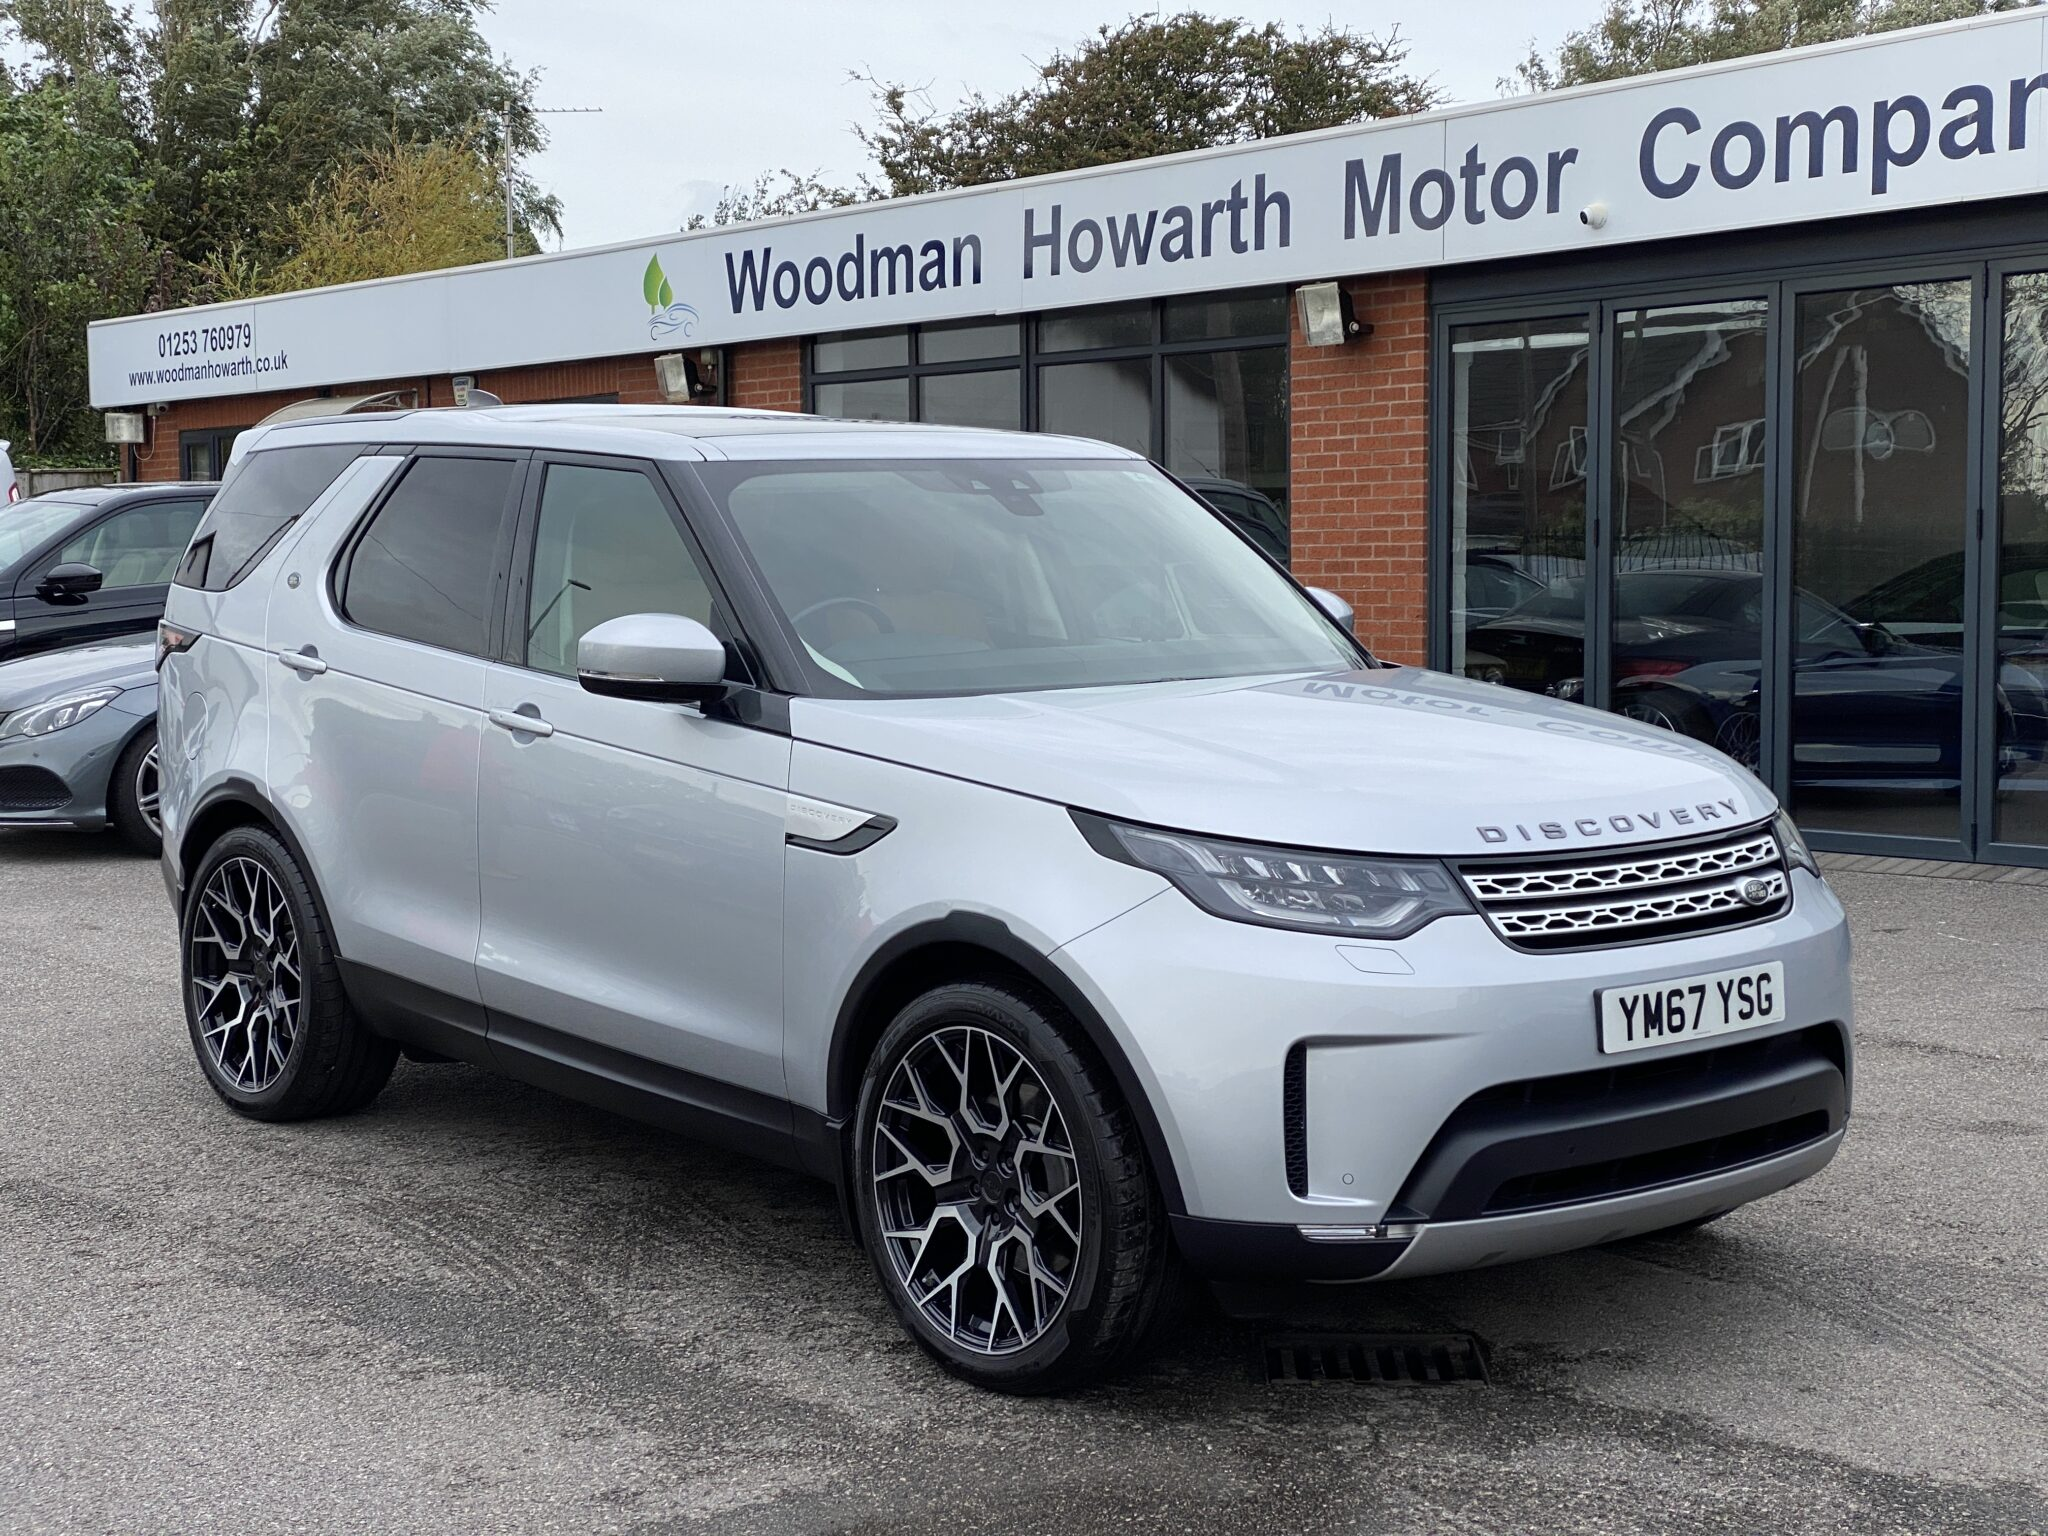 2017 67 LANDROVER DISCOVERY SDV6 HSE AUTO 7 SEAT Huge Spec Low Miles Stunning Colour Combination